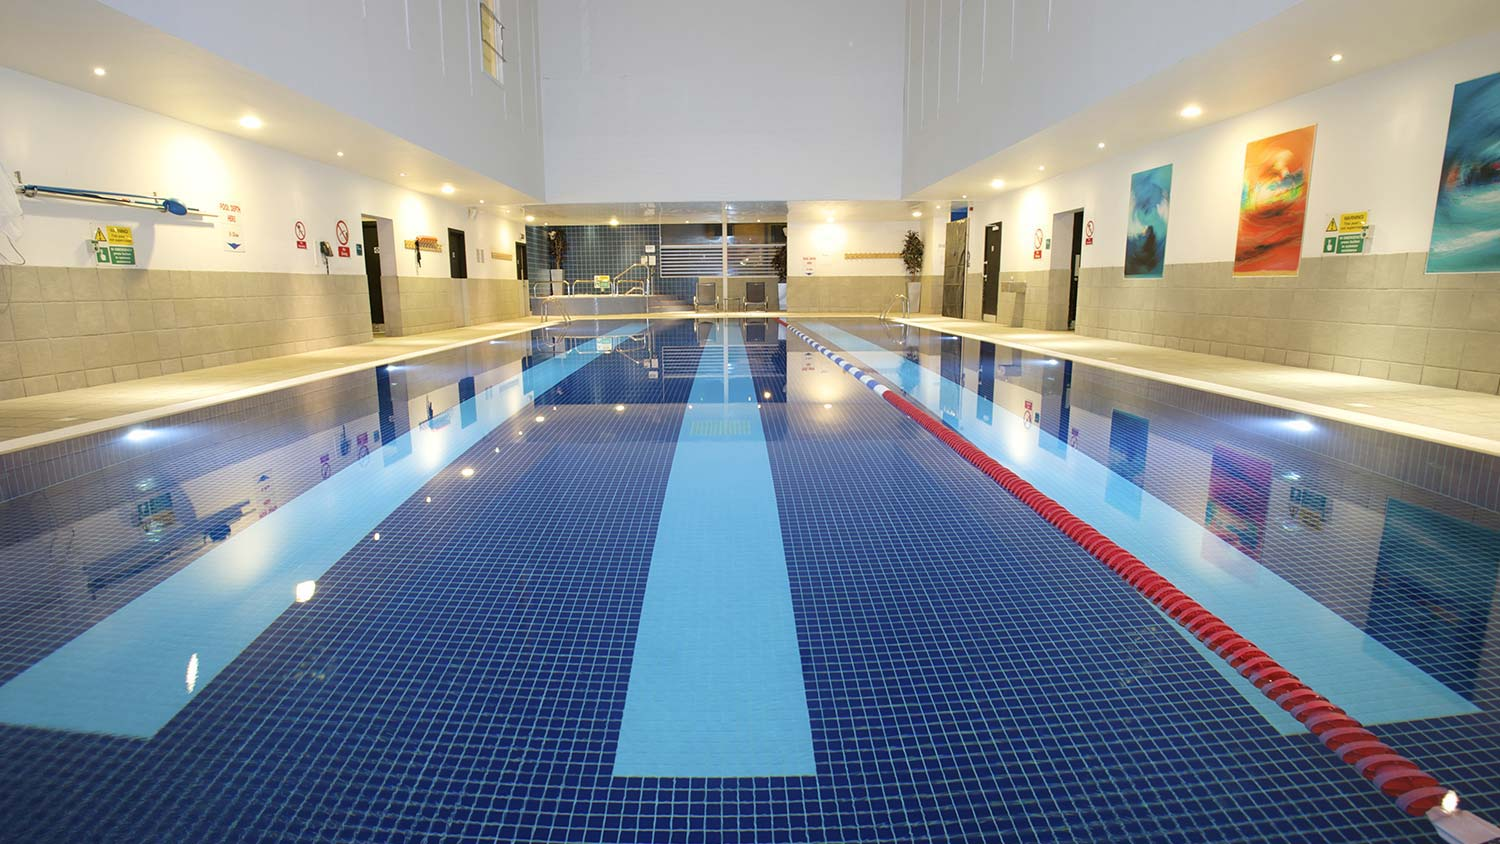 Harrogate Fitness & Wellbeing Gym - Swimming pool